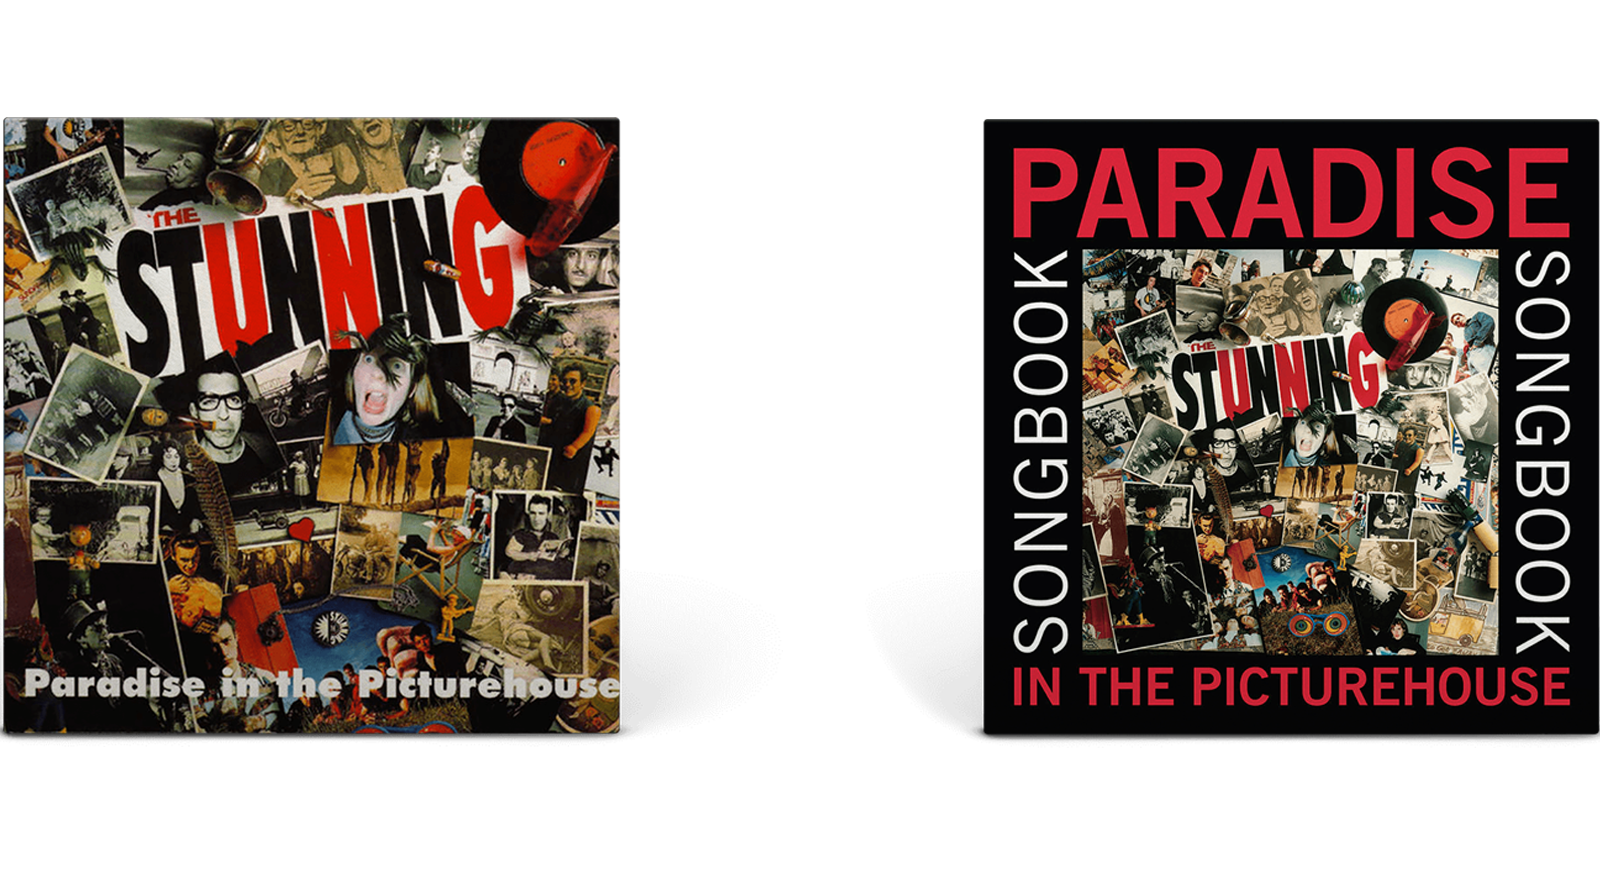 THE STUNNING <br>PARADISE IN THE PICTUREHOUSE [CD & SONGBOOK BUNDLE]